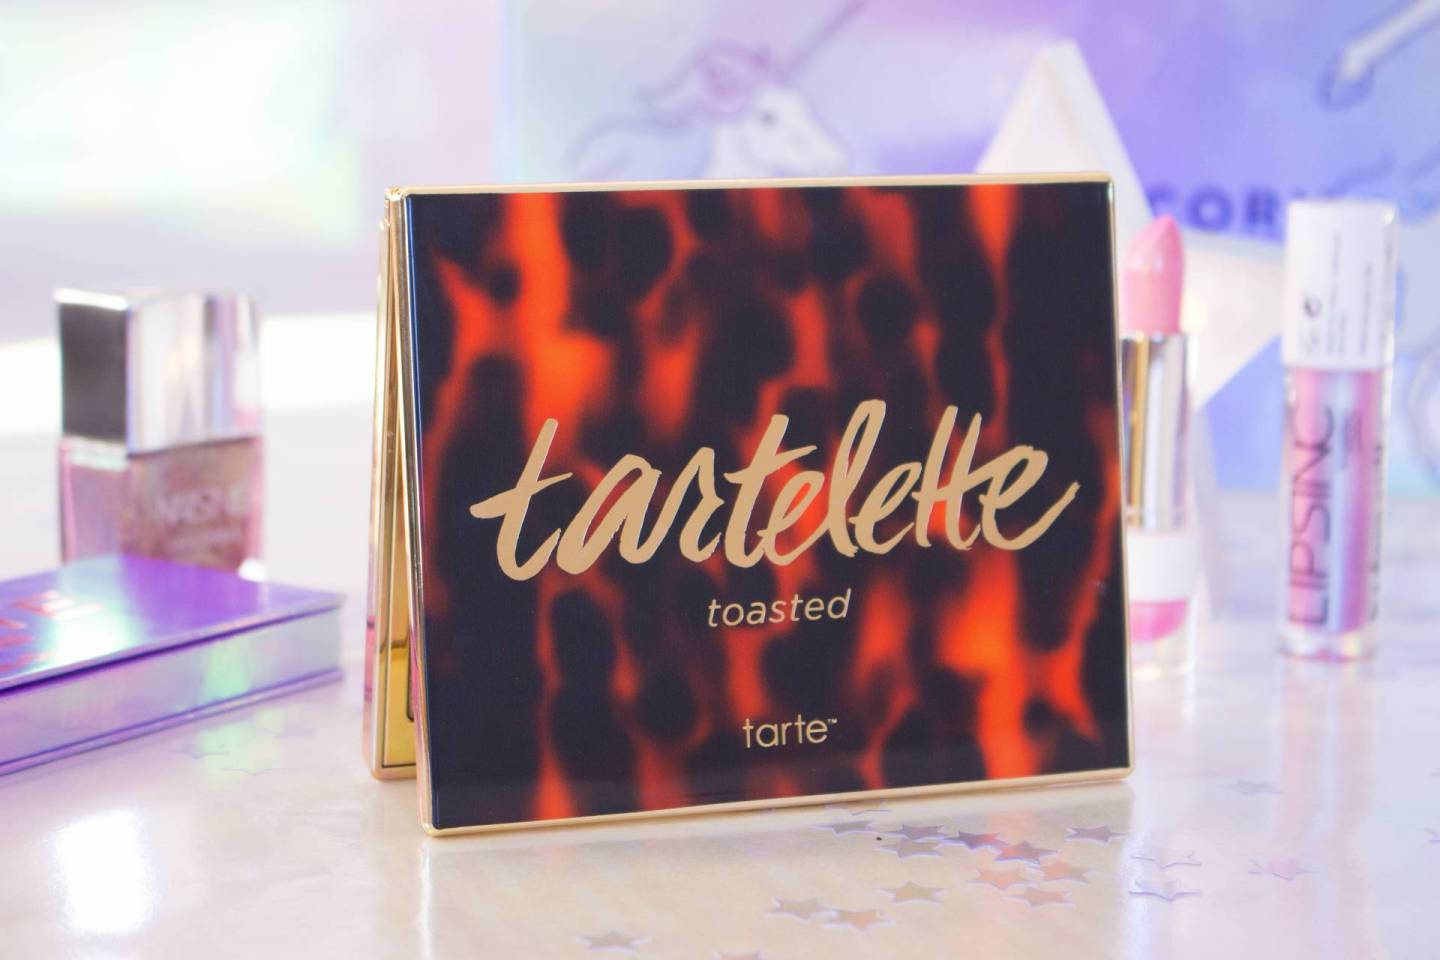 Tarte Tartlette Toasted Eyeshadow Palette Review & Swatches